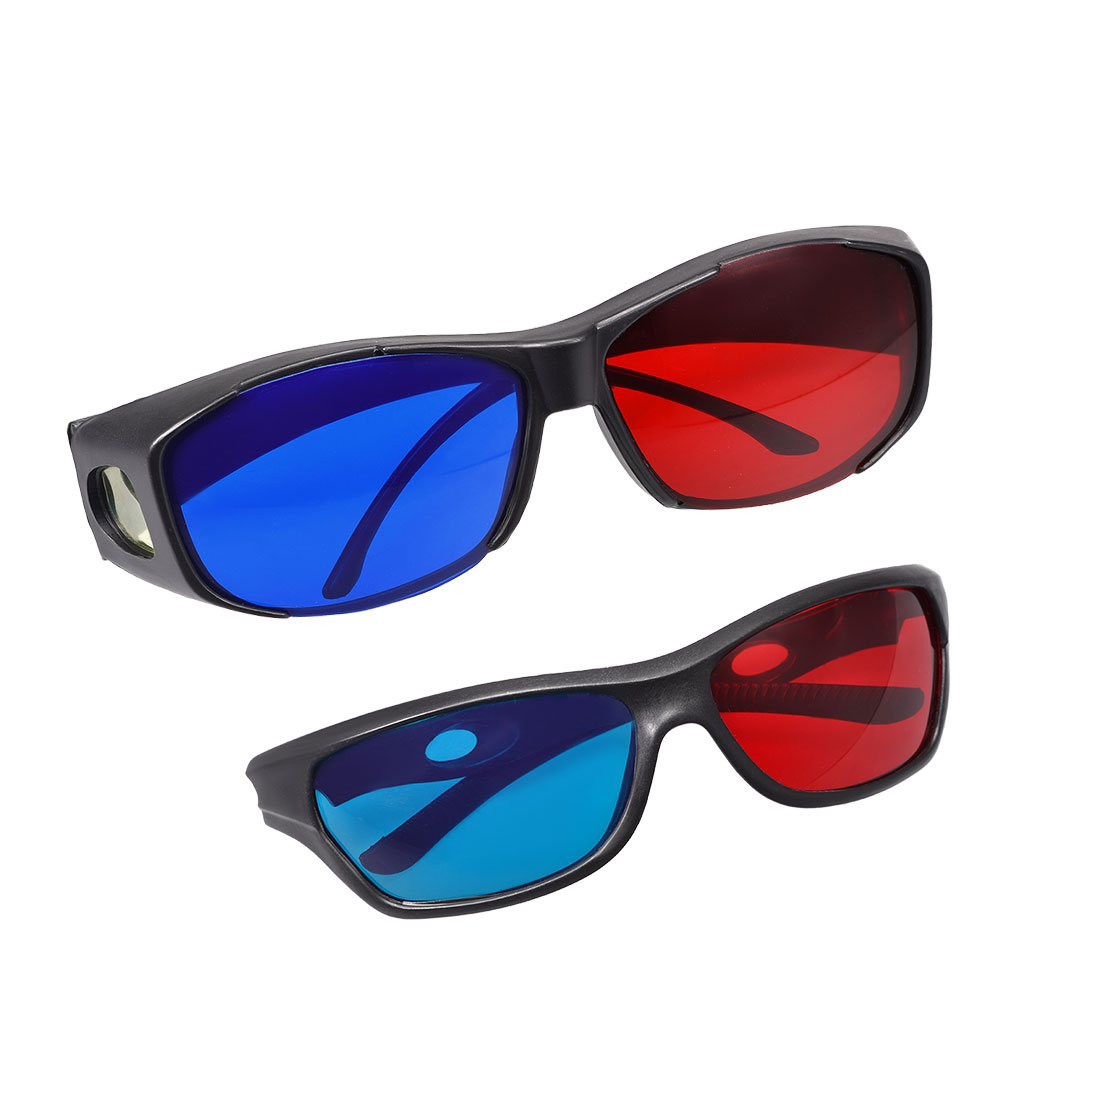 Red-Blue 3D Glasses Black Frame 3D Visoin Glass for Movies Anaglyph Photos 1set